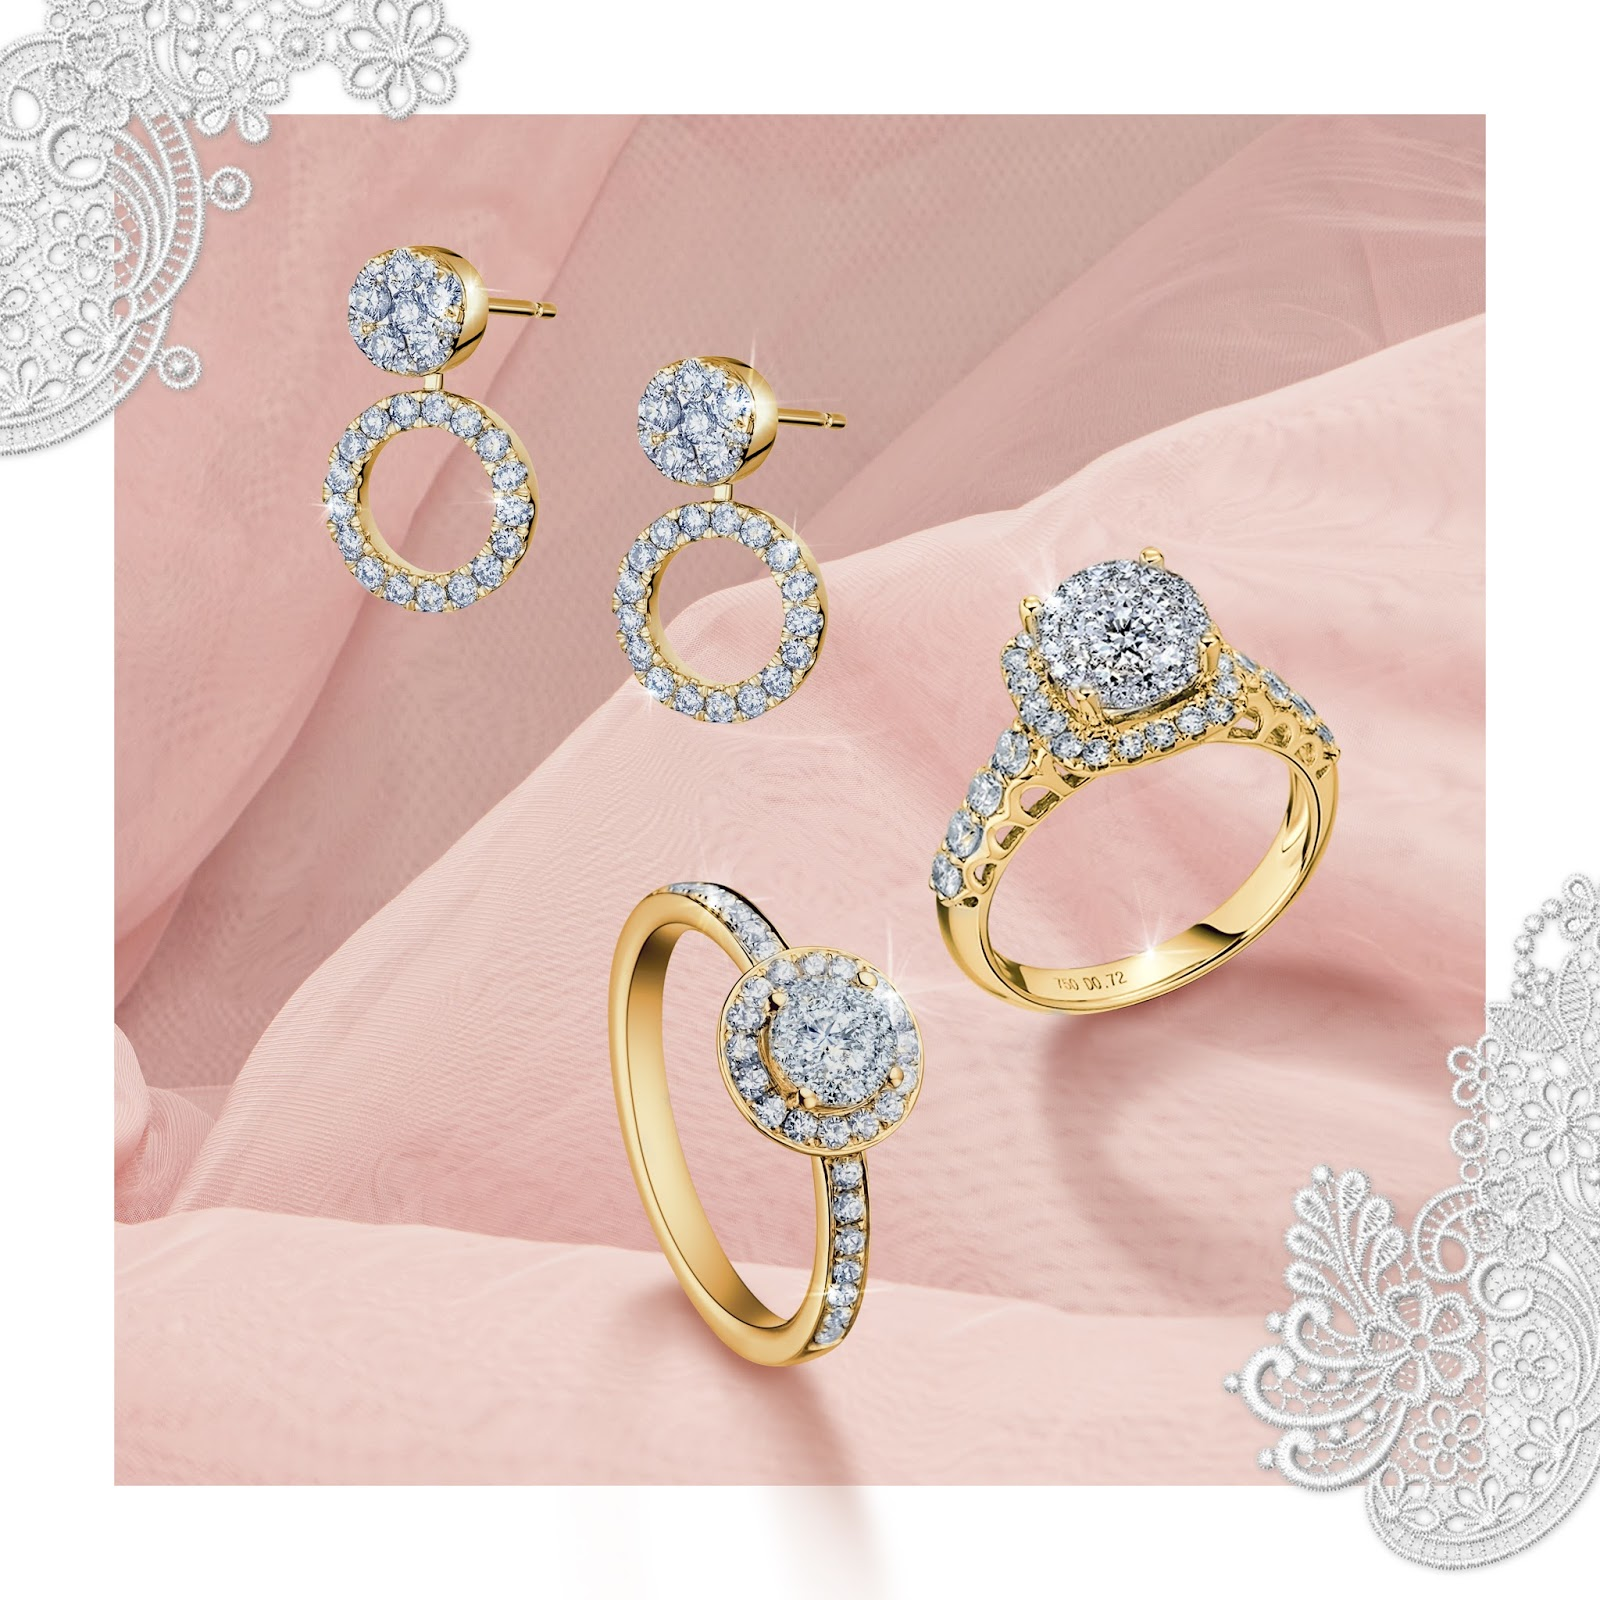 This is E-Life: Be a brilliantly shining bride with MyDiamond